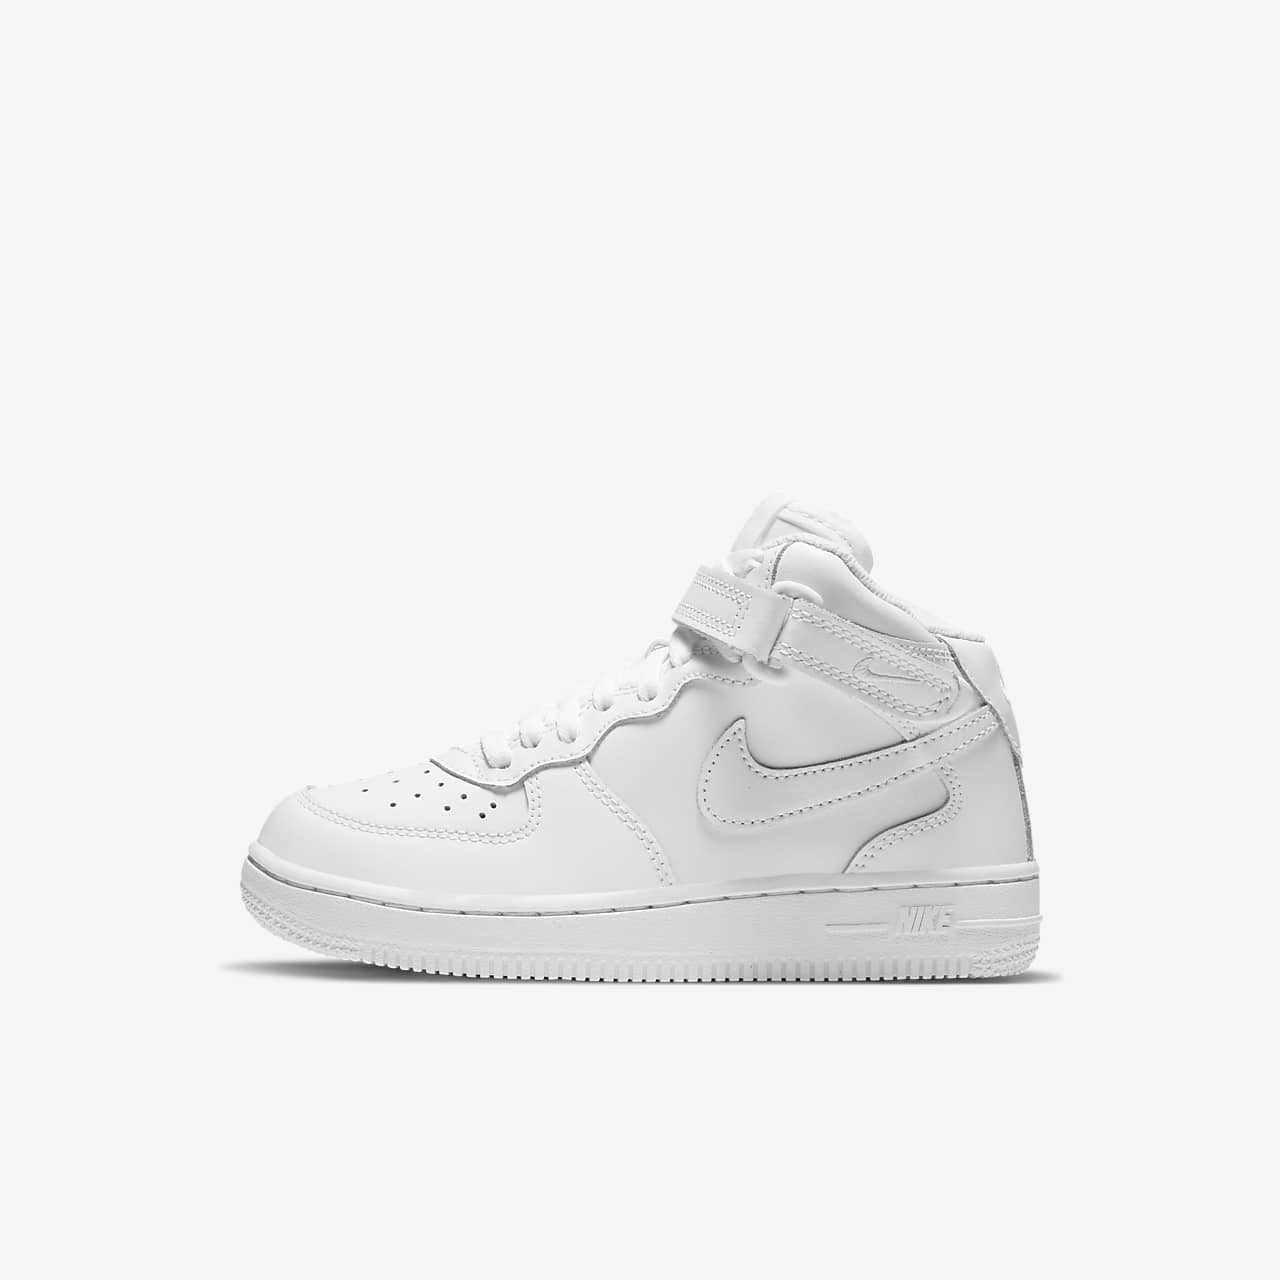 separation shoes 10012 446db Little Kids  Shoe. Nike Air Force 1 Mid